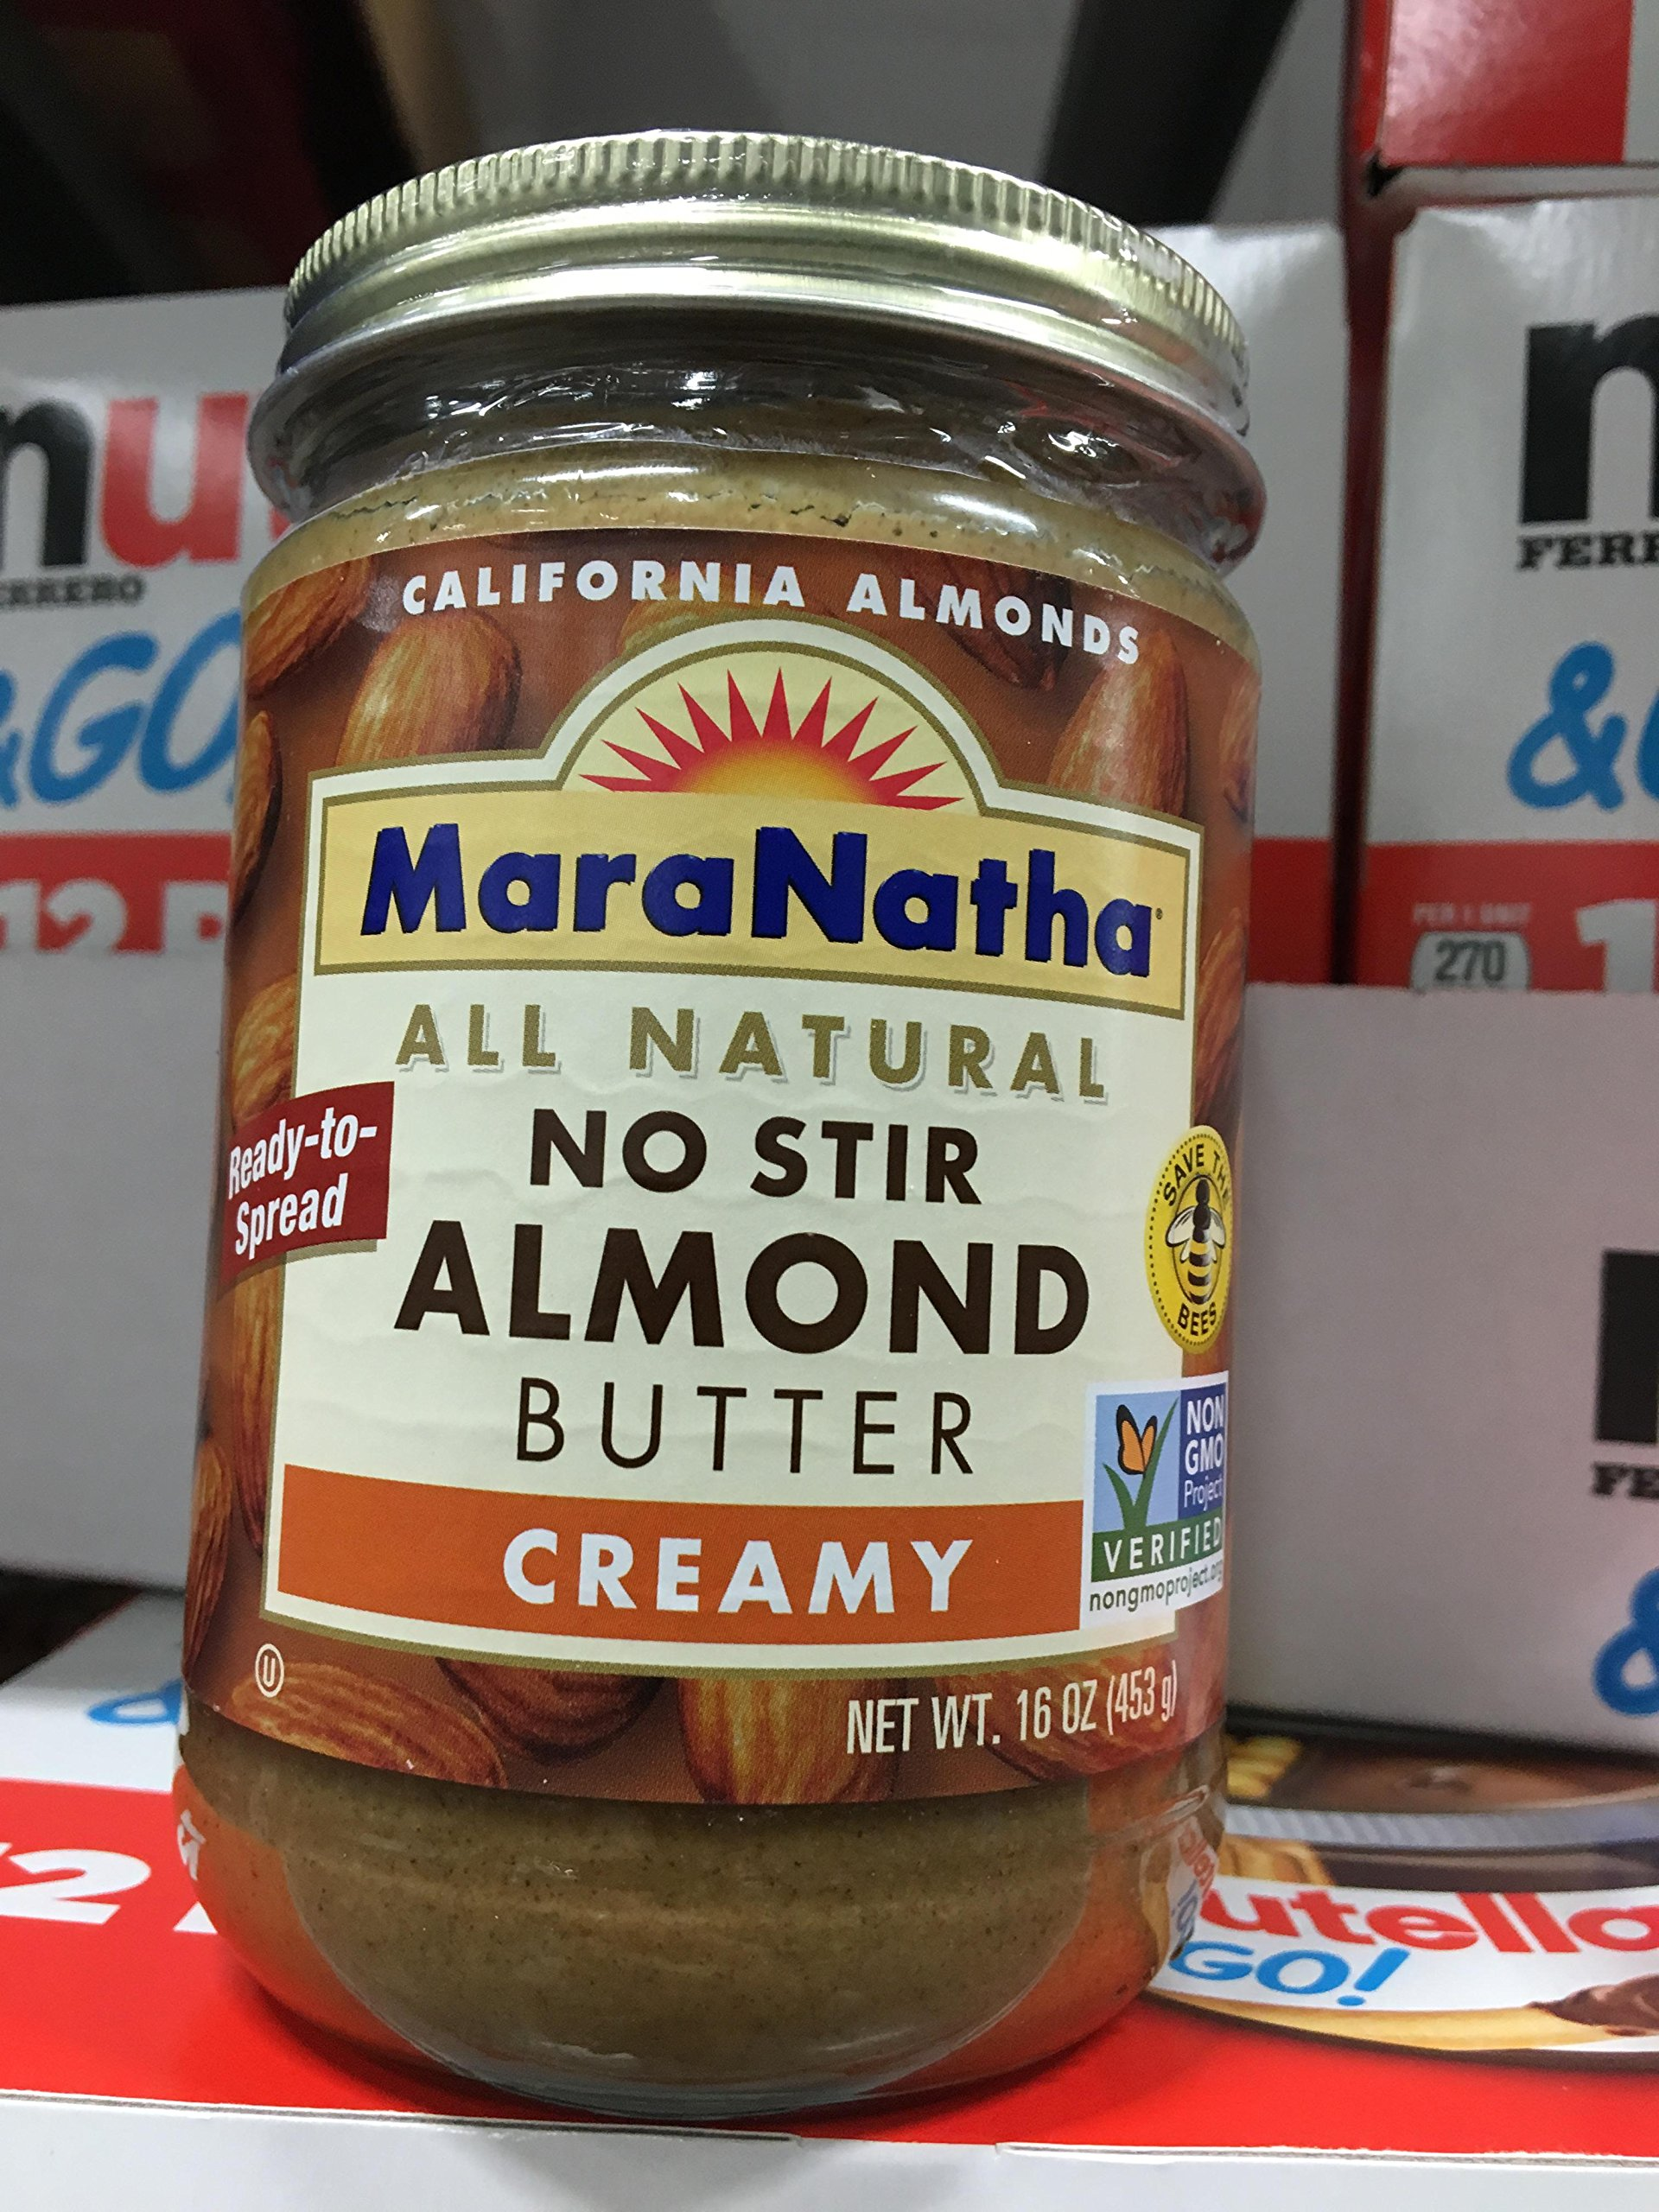 MaraNatha All Natural No Stir Almond Butter Creamy 16 oz